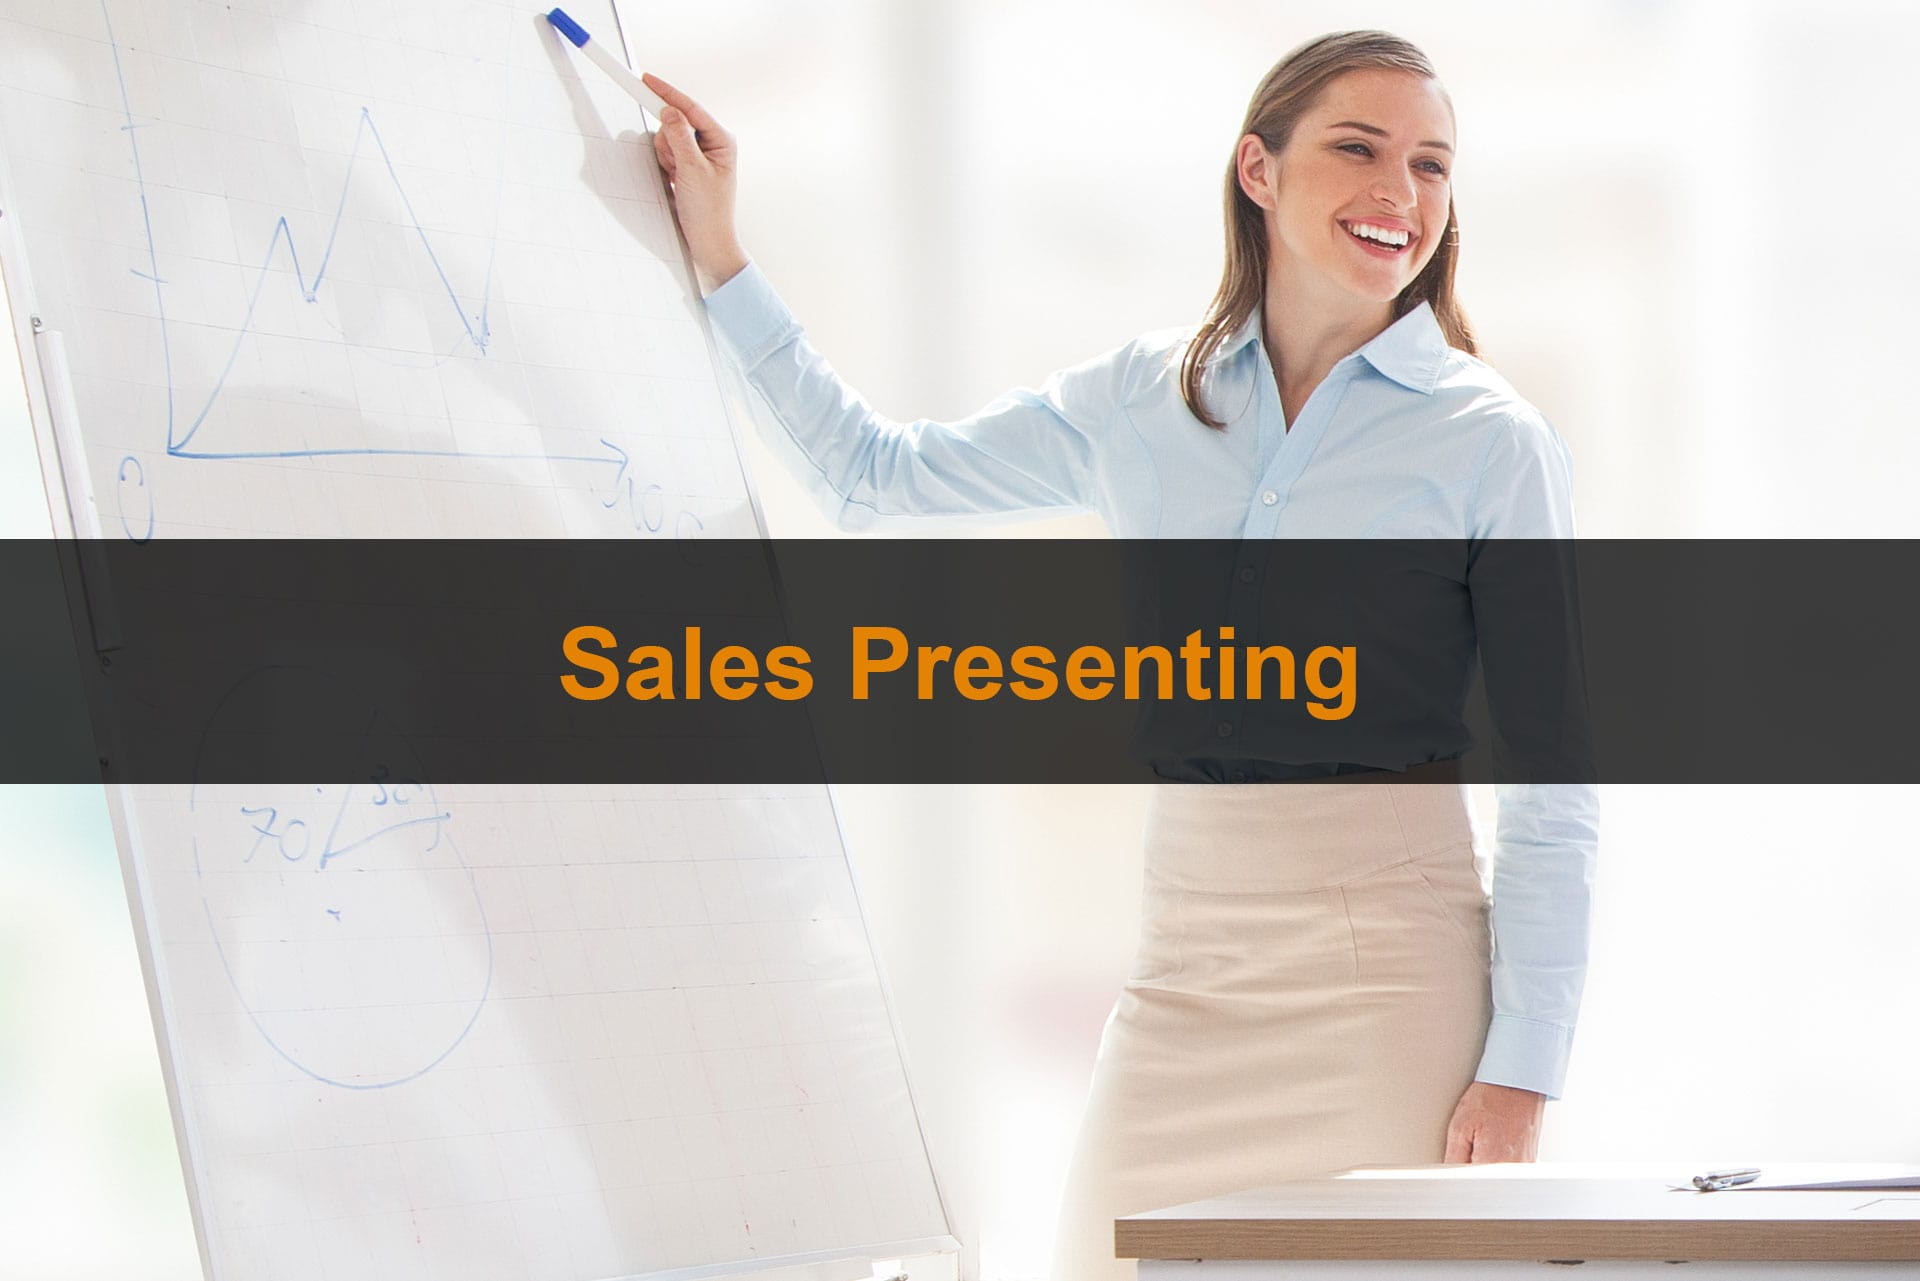 Sales-Presenting-Artwork-2019-jpg-min